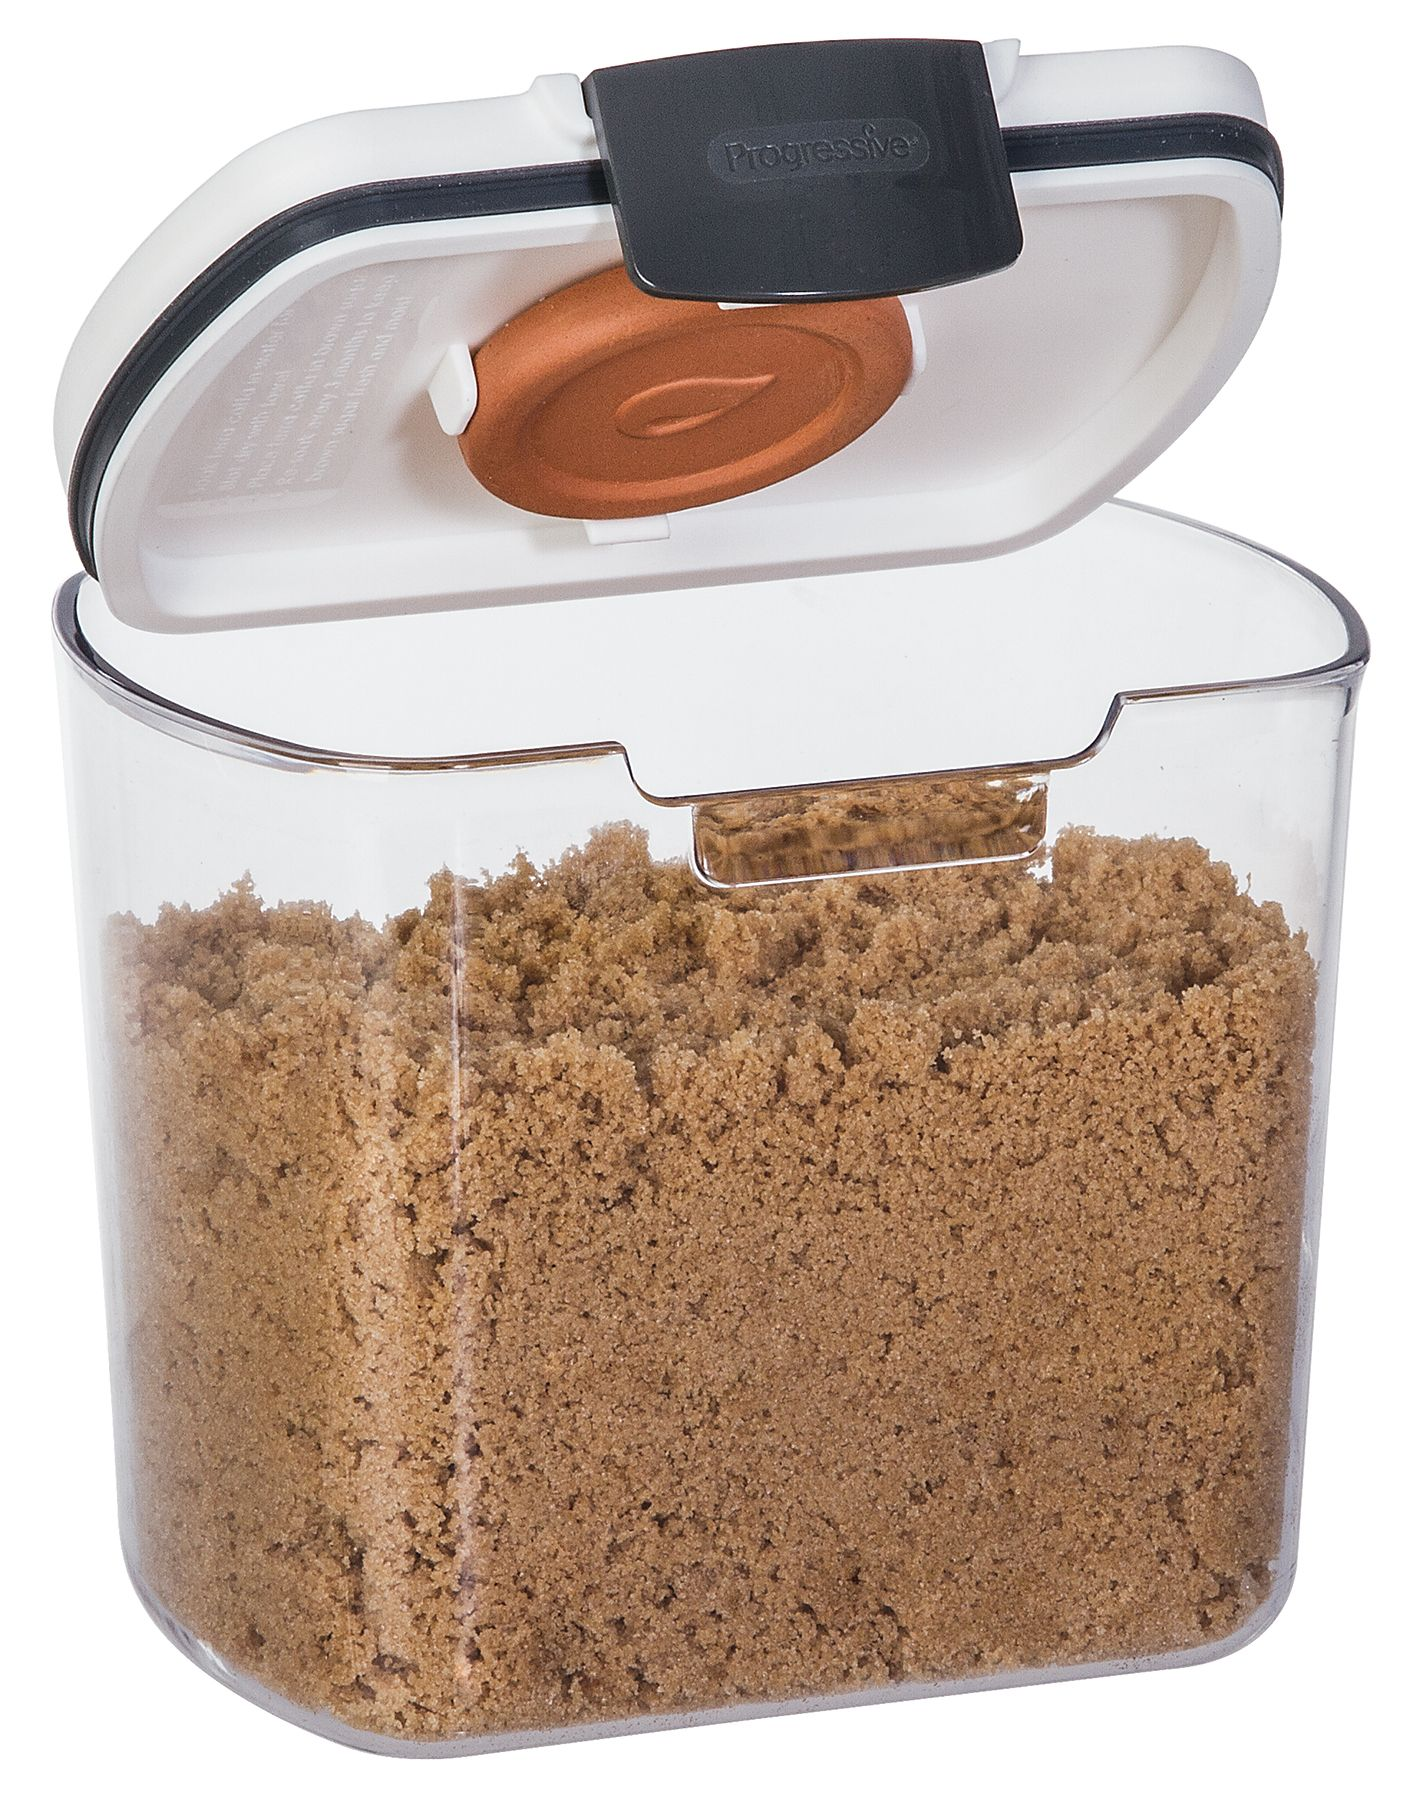 Food Storage Containers That Do More Than Just Store Kitchenware News Housewares Review Sugar Container Sugar Storage Food Storage Containers